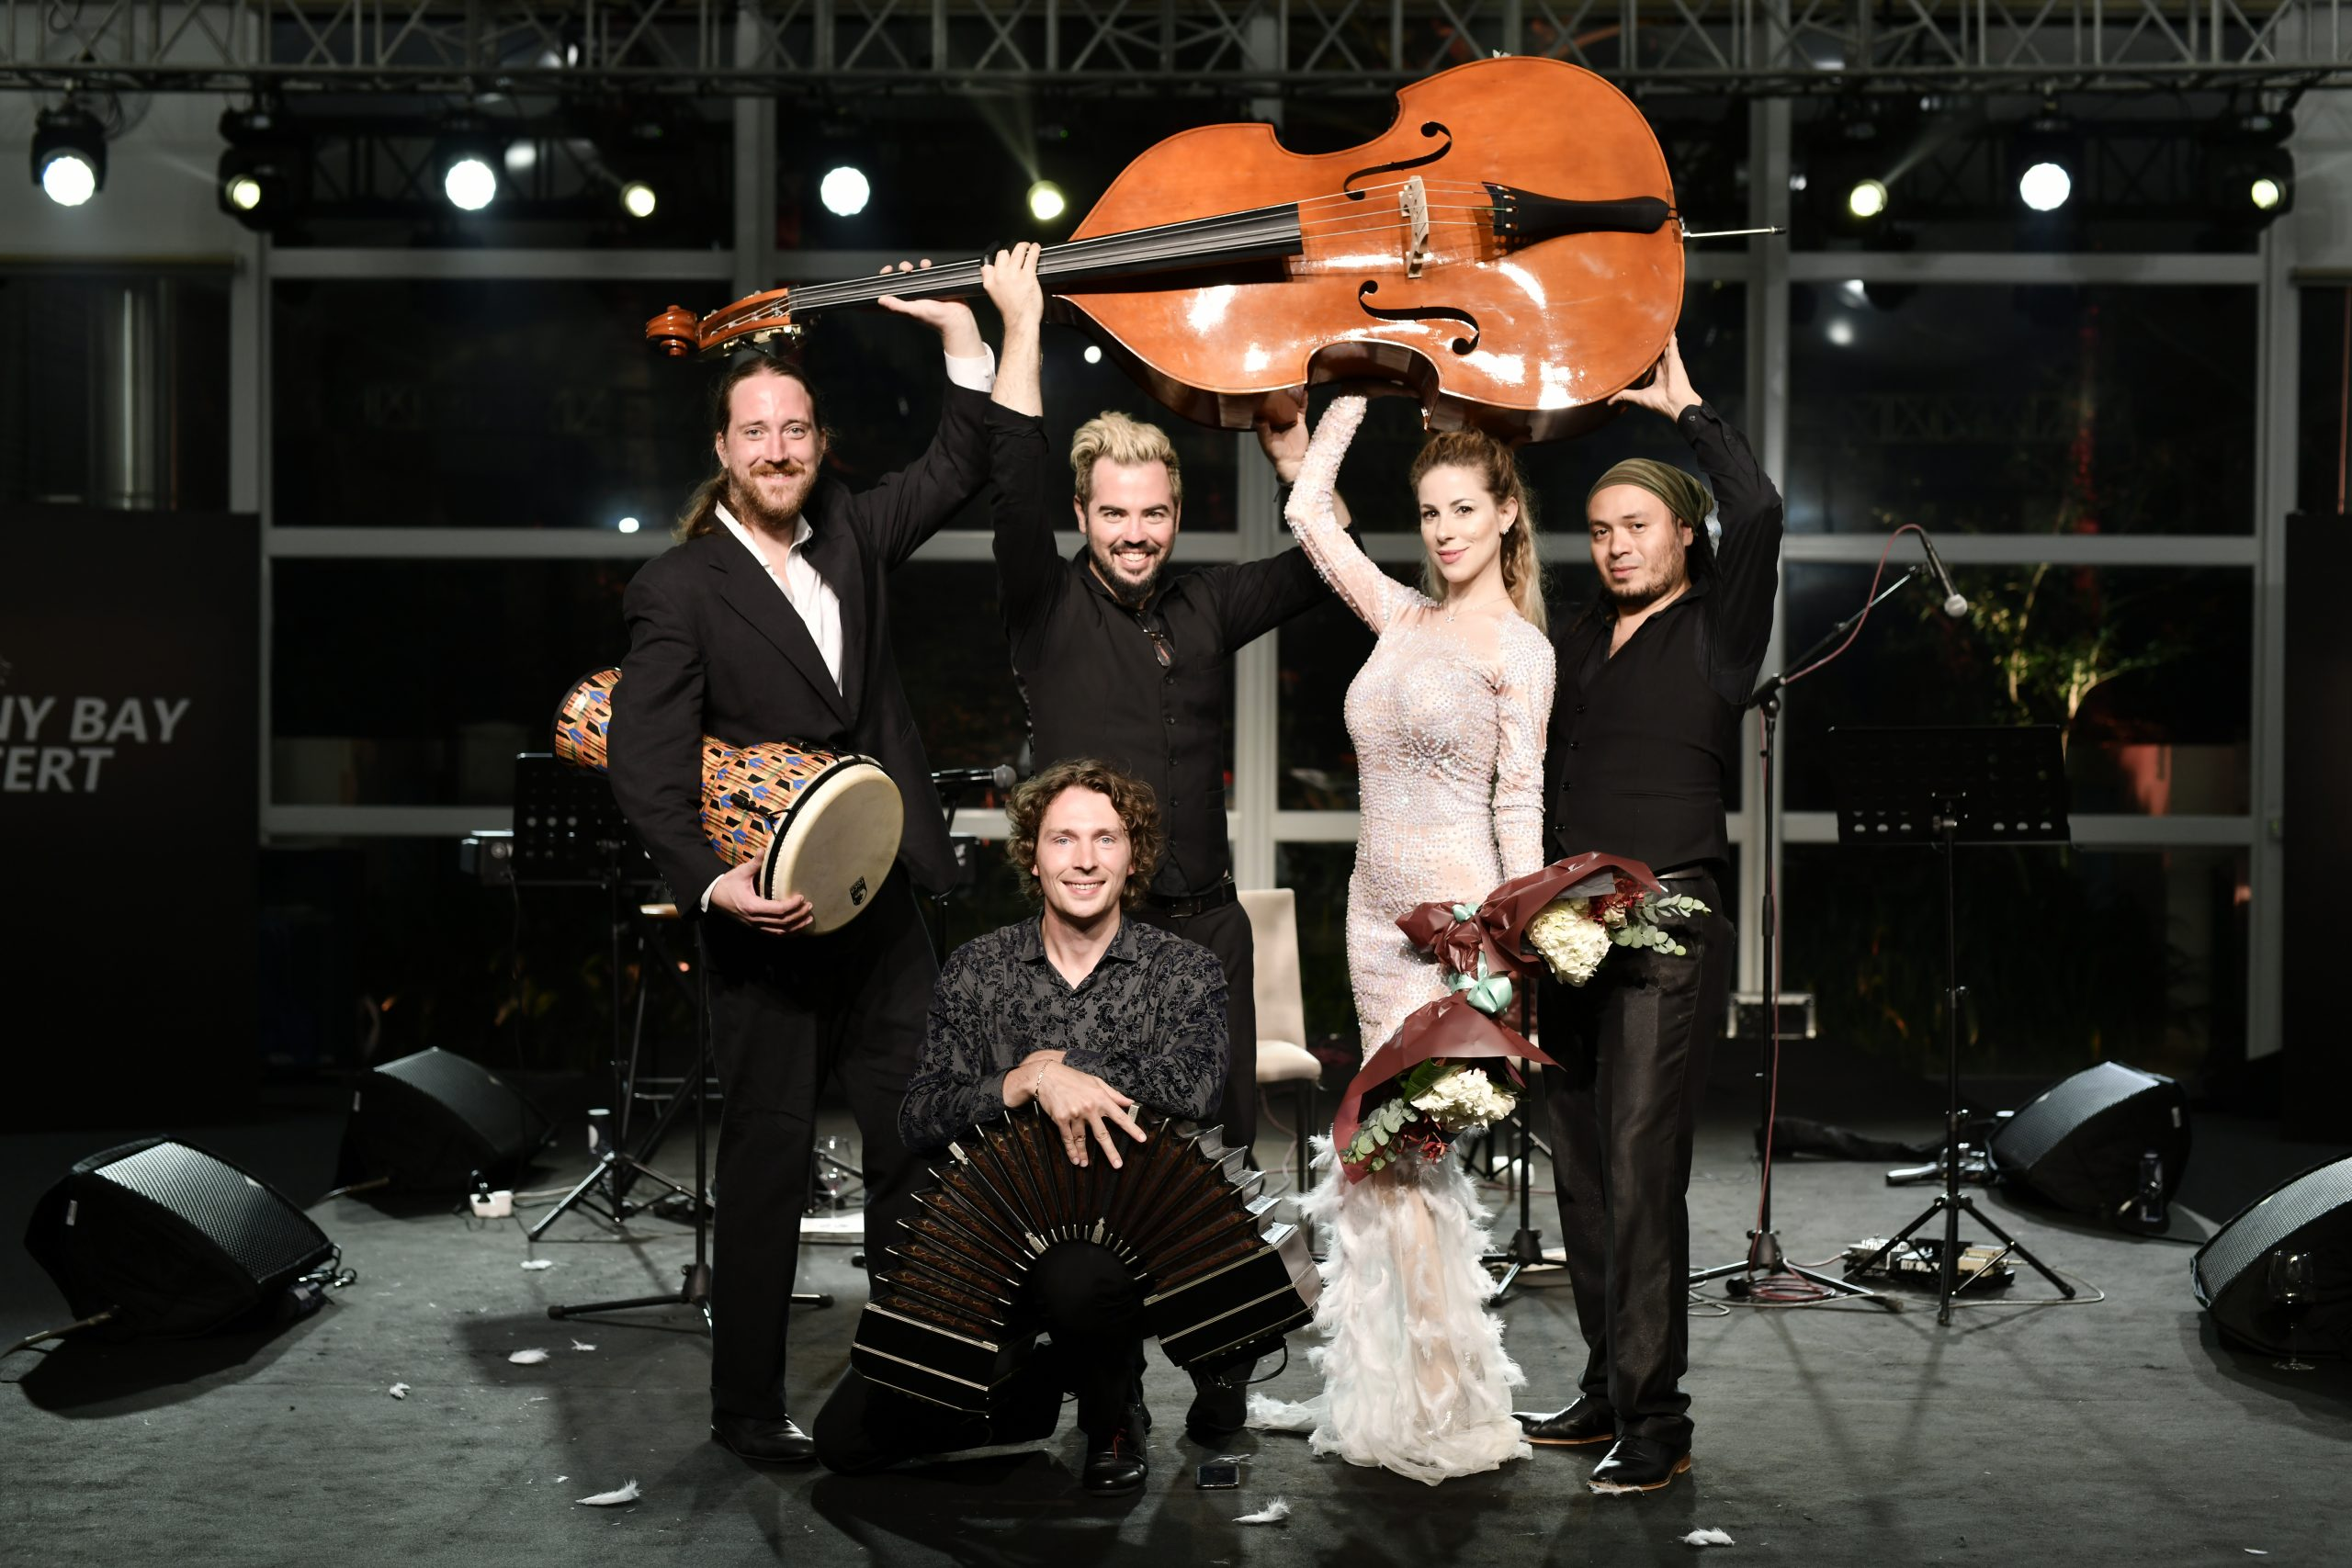 ANDY SANTANA BASS ,DANIELA BESSIA , THE GARDEL TRIO ,DOUBLE BASS , TANGO BAND IN CHINA , ARGENTINA , POR UNA CABEZA , EL CHOCLO , DESPASITO ,ACOUSTIC BAND 3